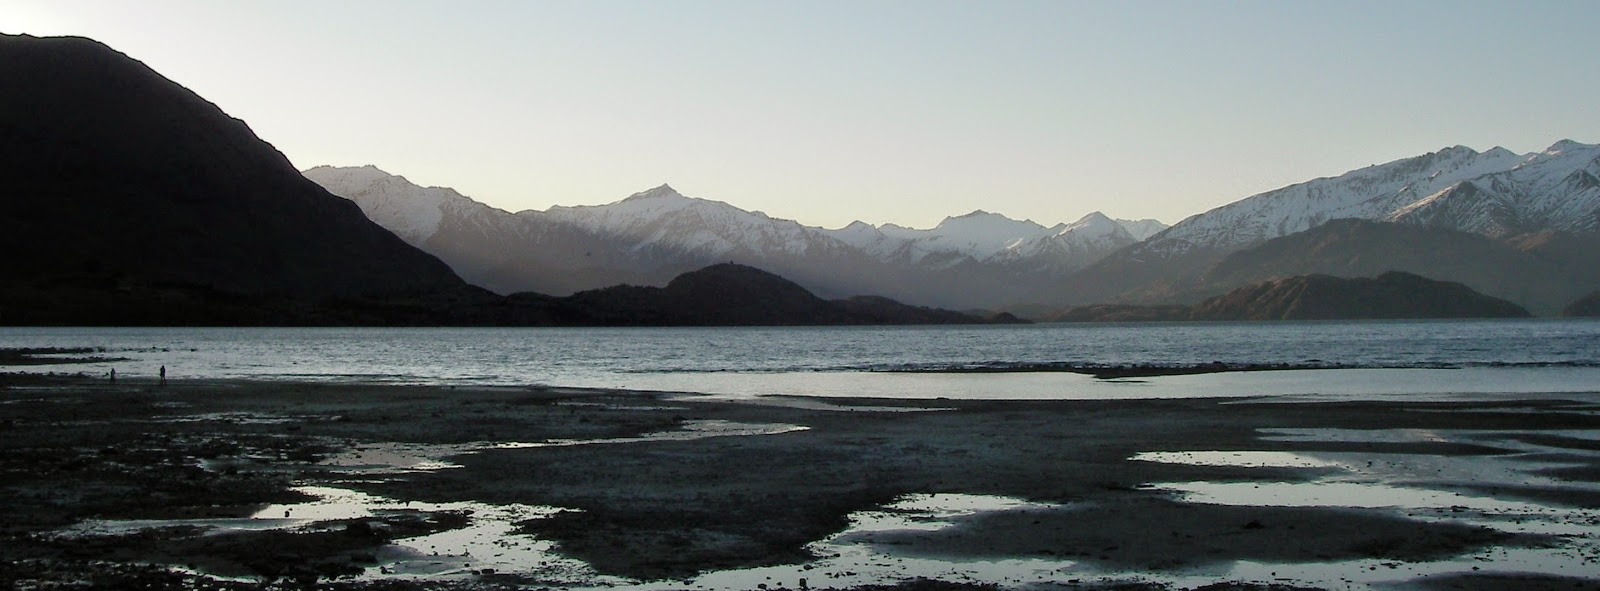 View of Lake Wanaka at sunset